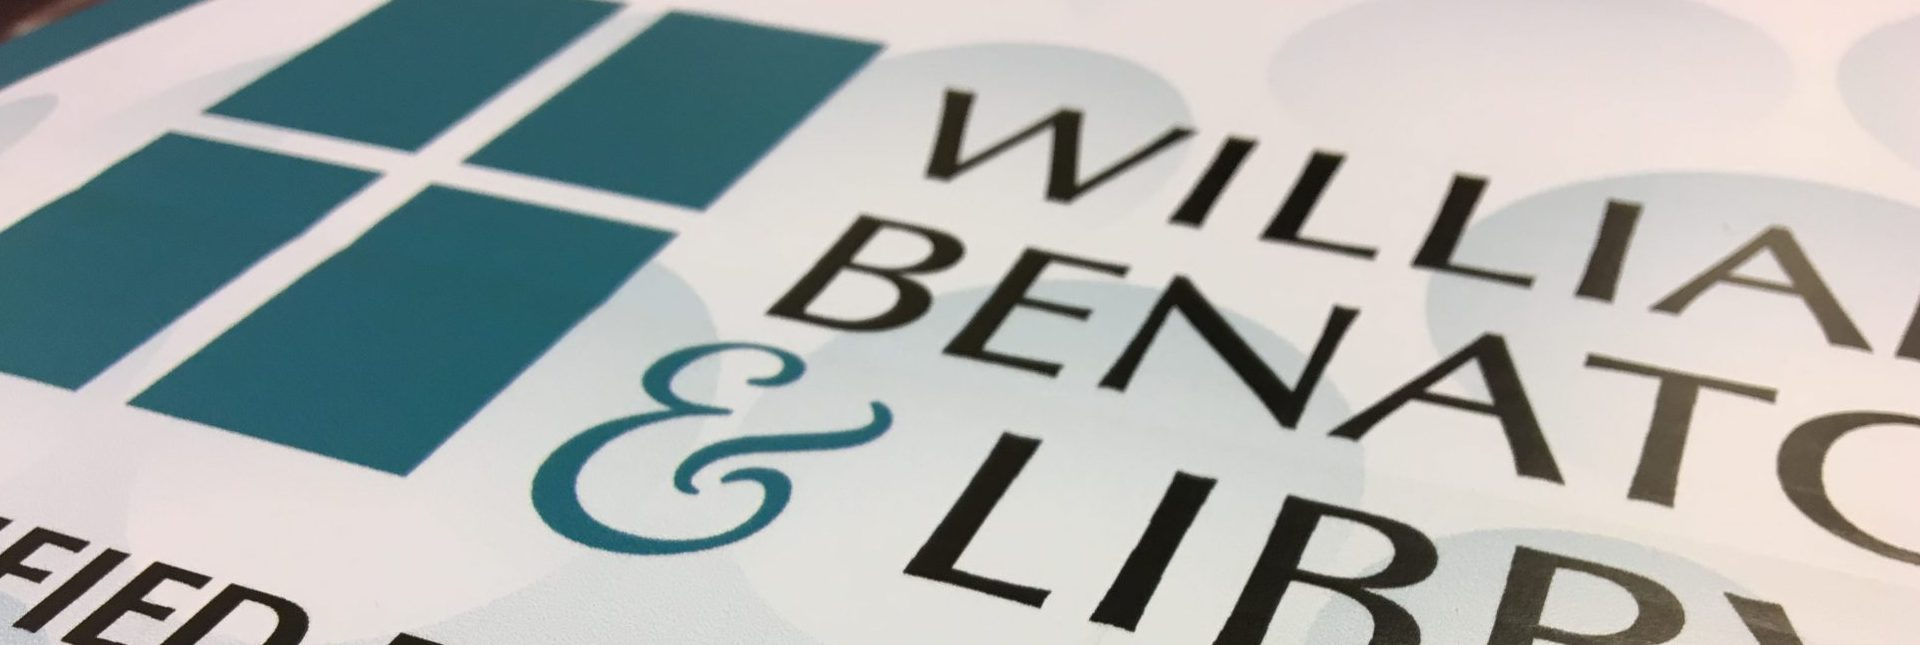 Staff | Williams Benator & Libby, LLP